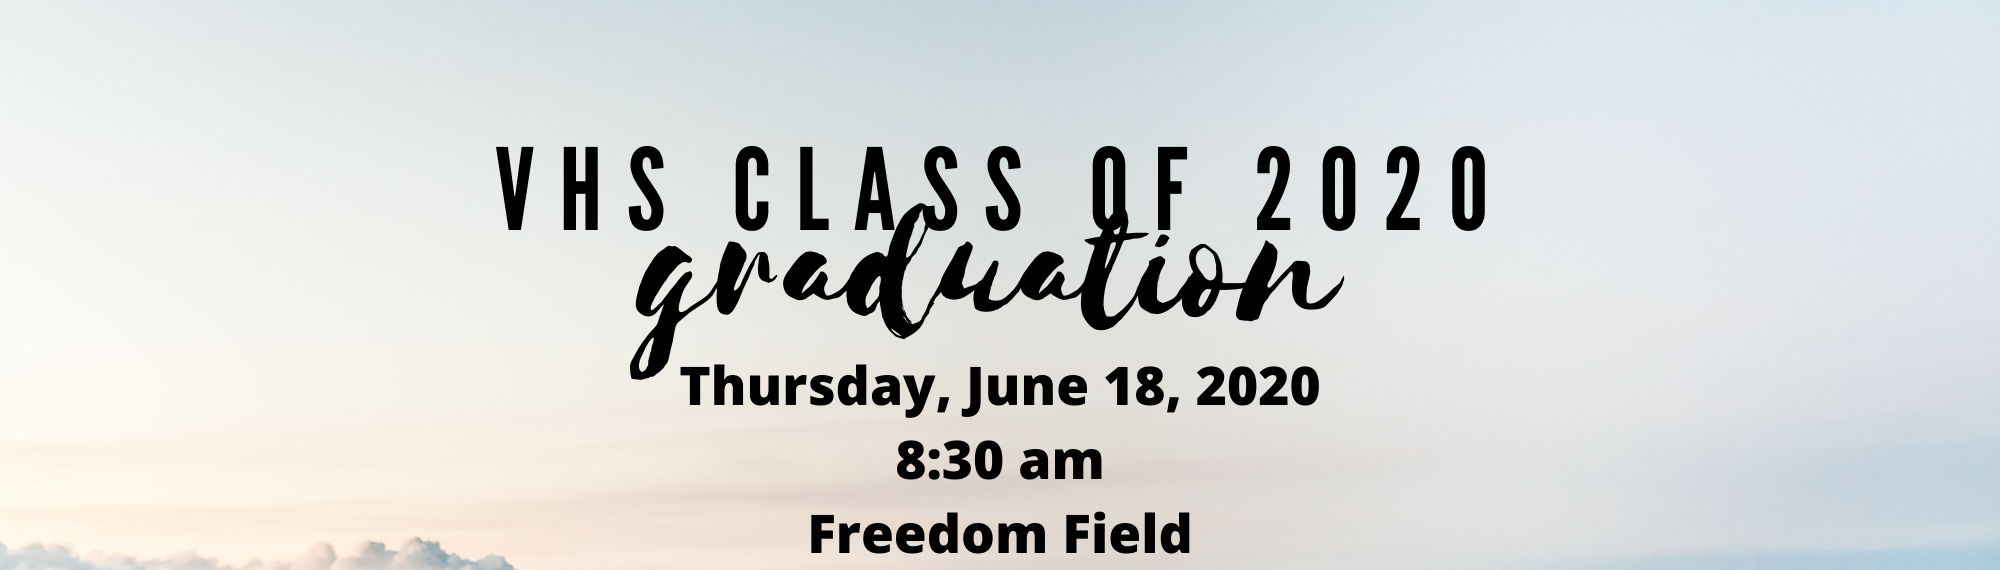 VHS Graduation Ceremony Thursday, June 18, 2020 at 8:30 am Freedom Field